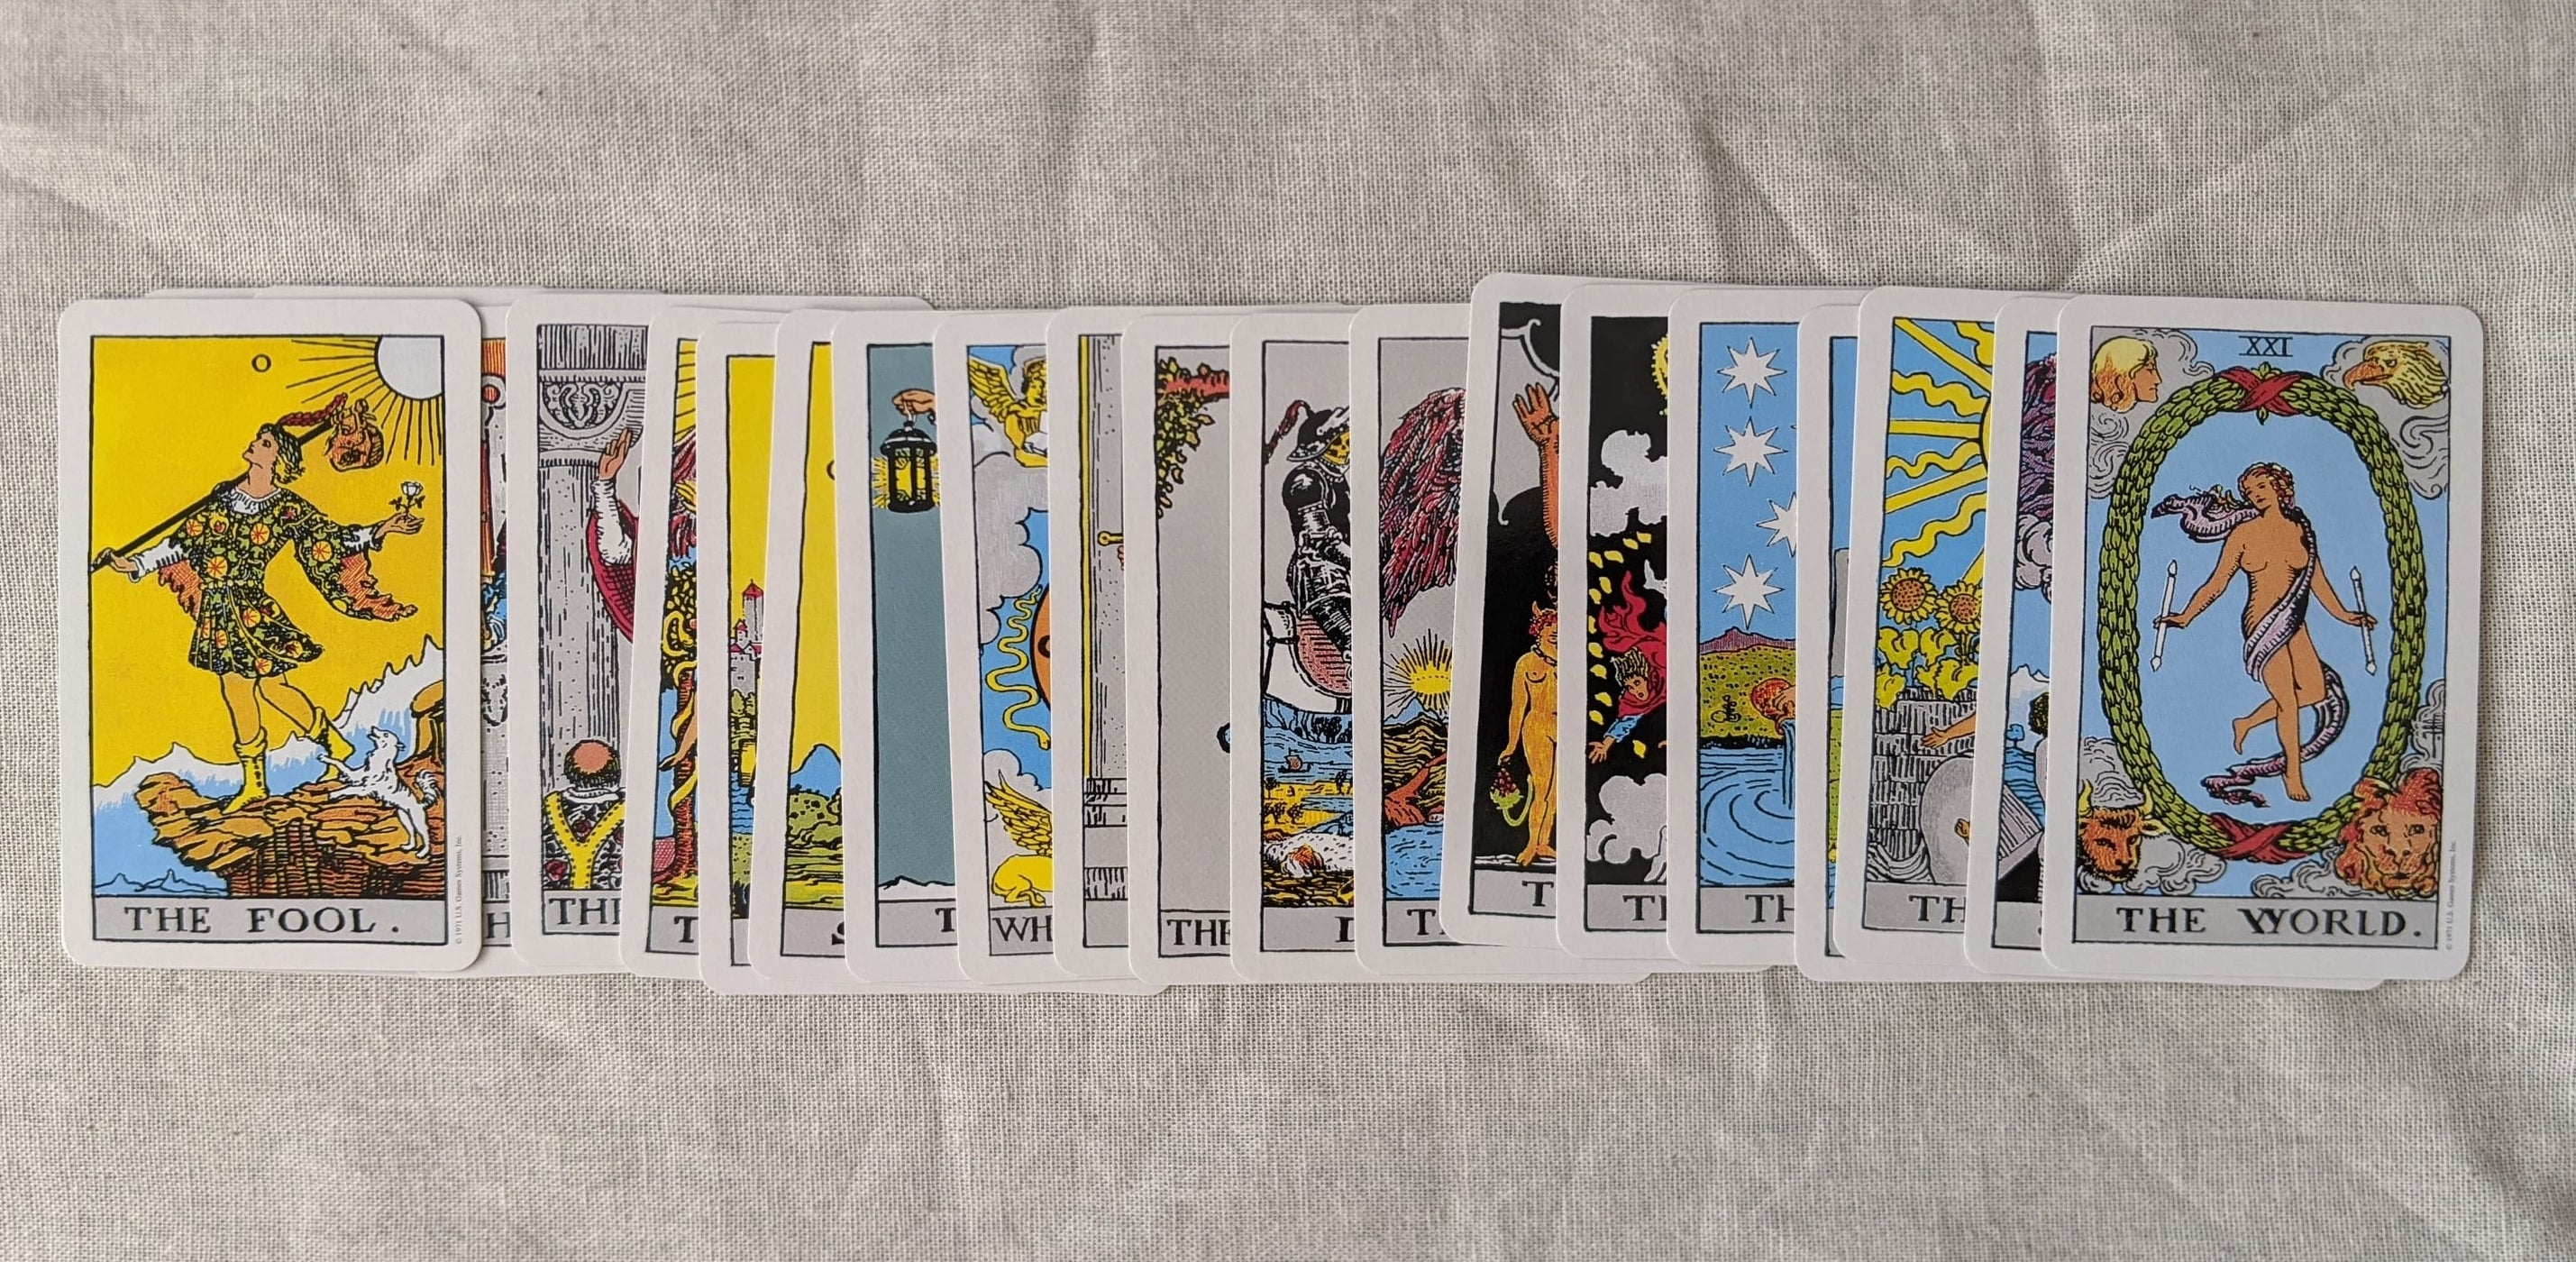 The Major Arcana of the Rider-Waite deck lay face up in order from the fool to the world cards